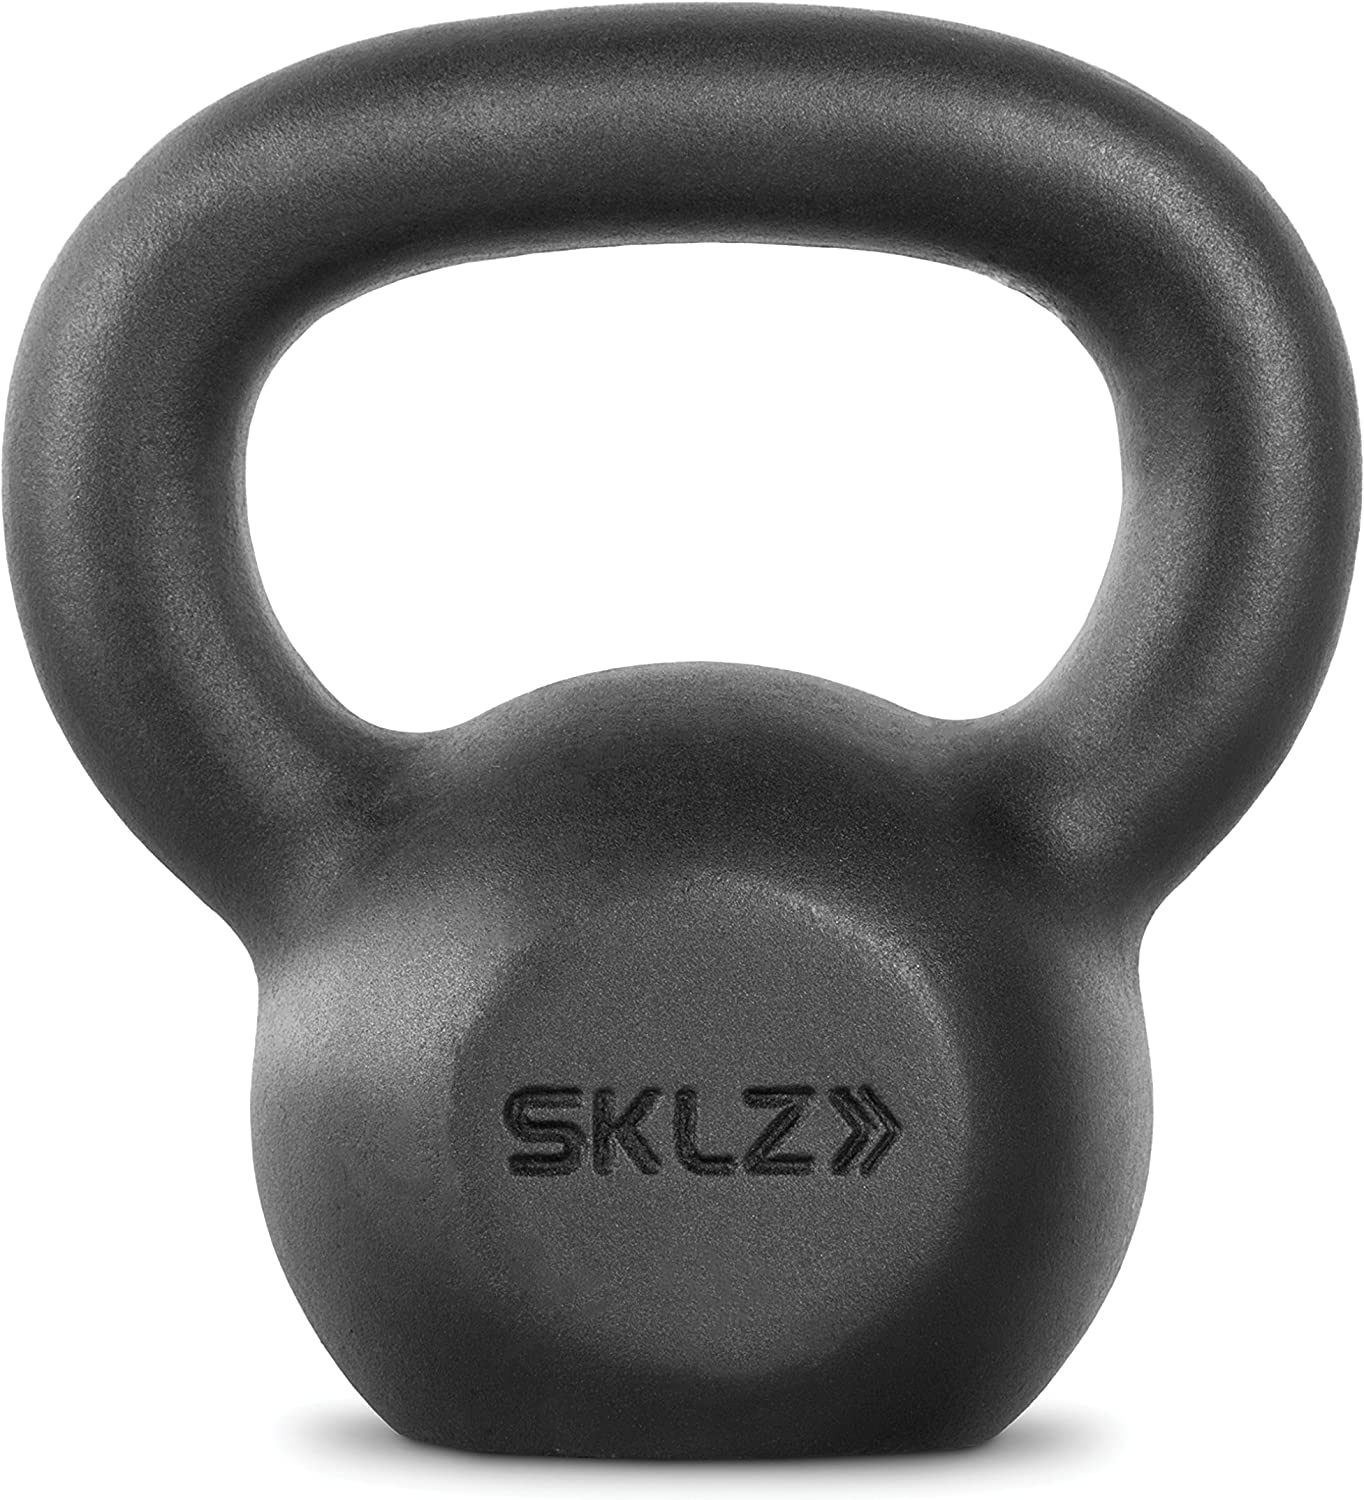 SKLZ Kettlebells. Strength and Conditioning Weight. Available in 6, 8, 12, 16, 20, and 24 kg